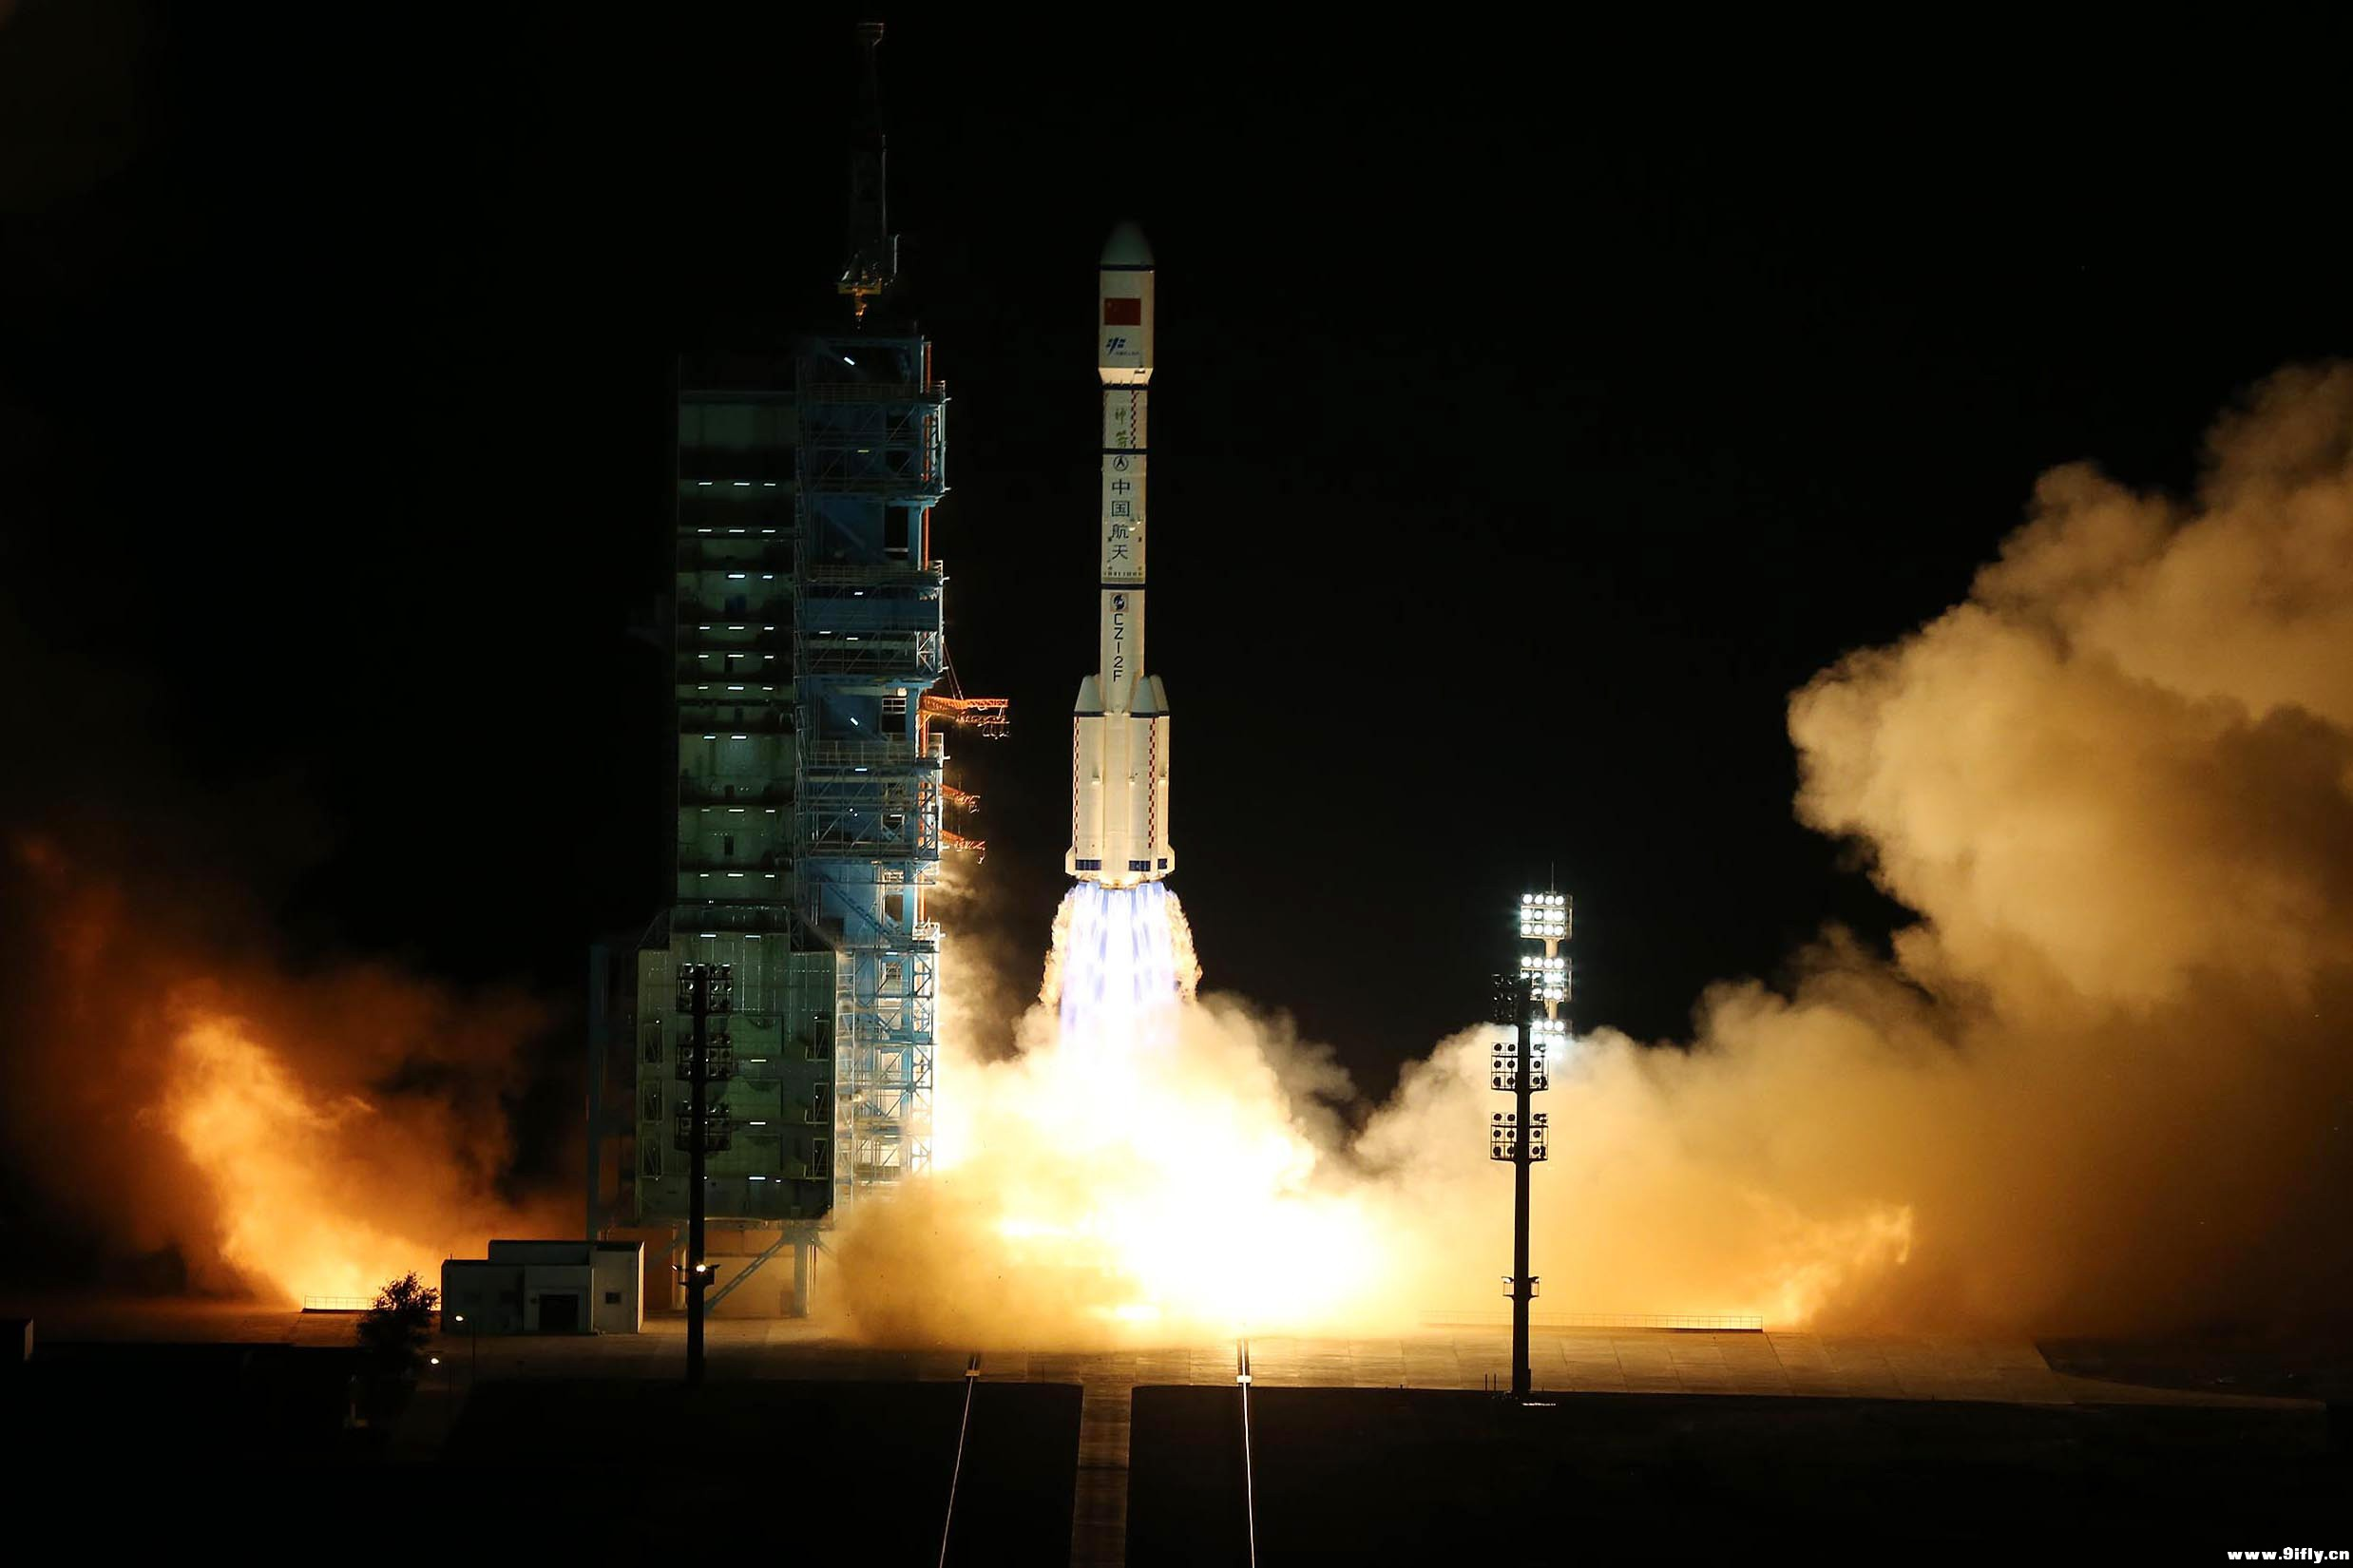 China Launched and Landed a Secret Reusable Spacecraft While You Weren't Looking